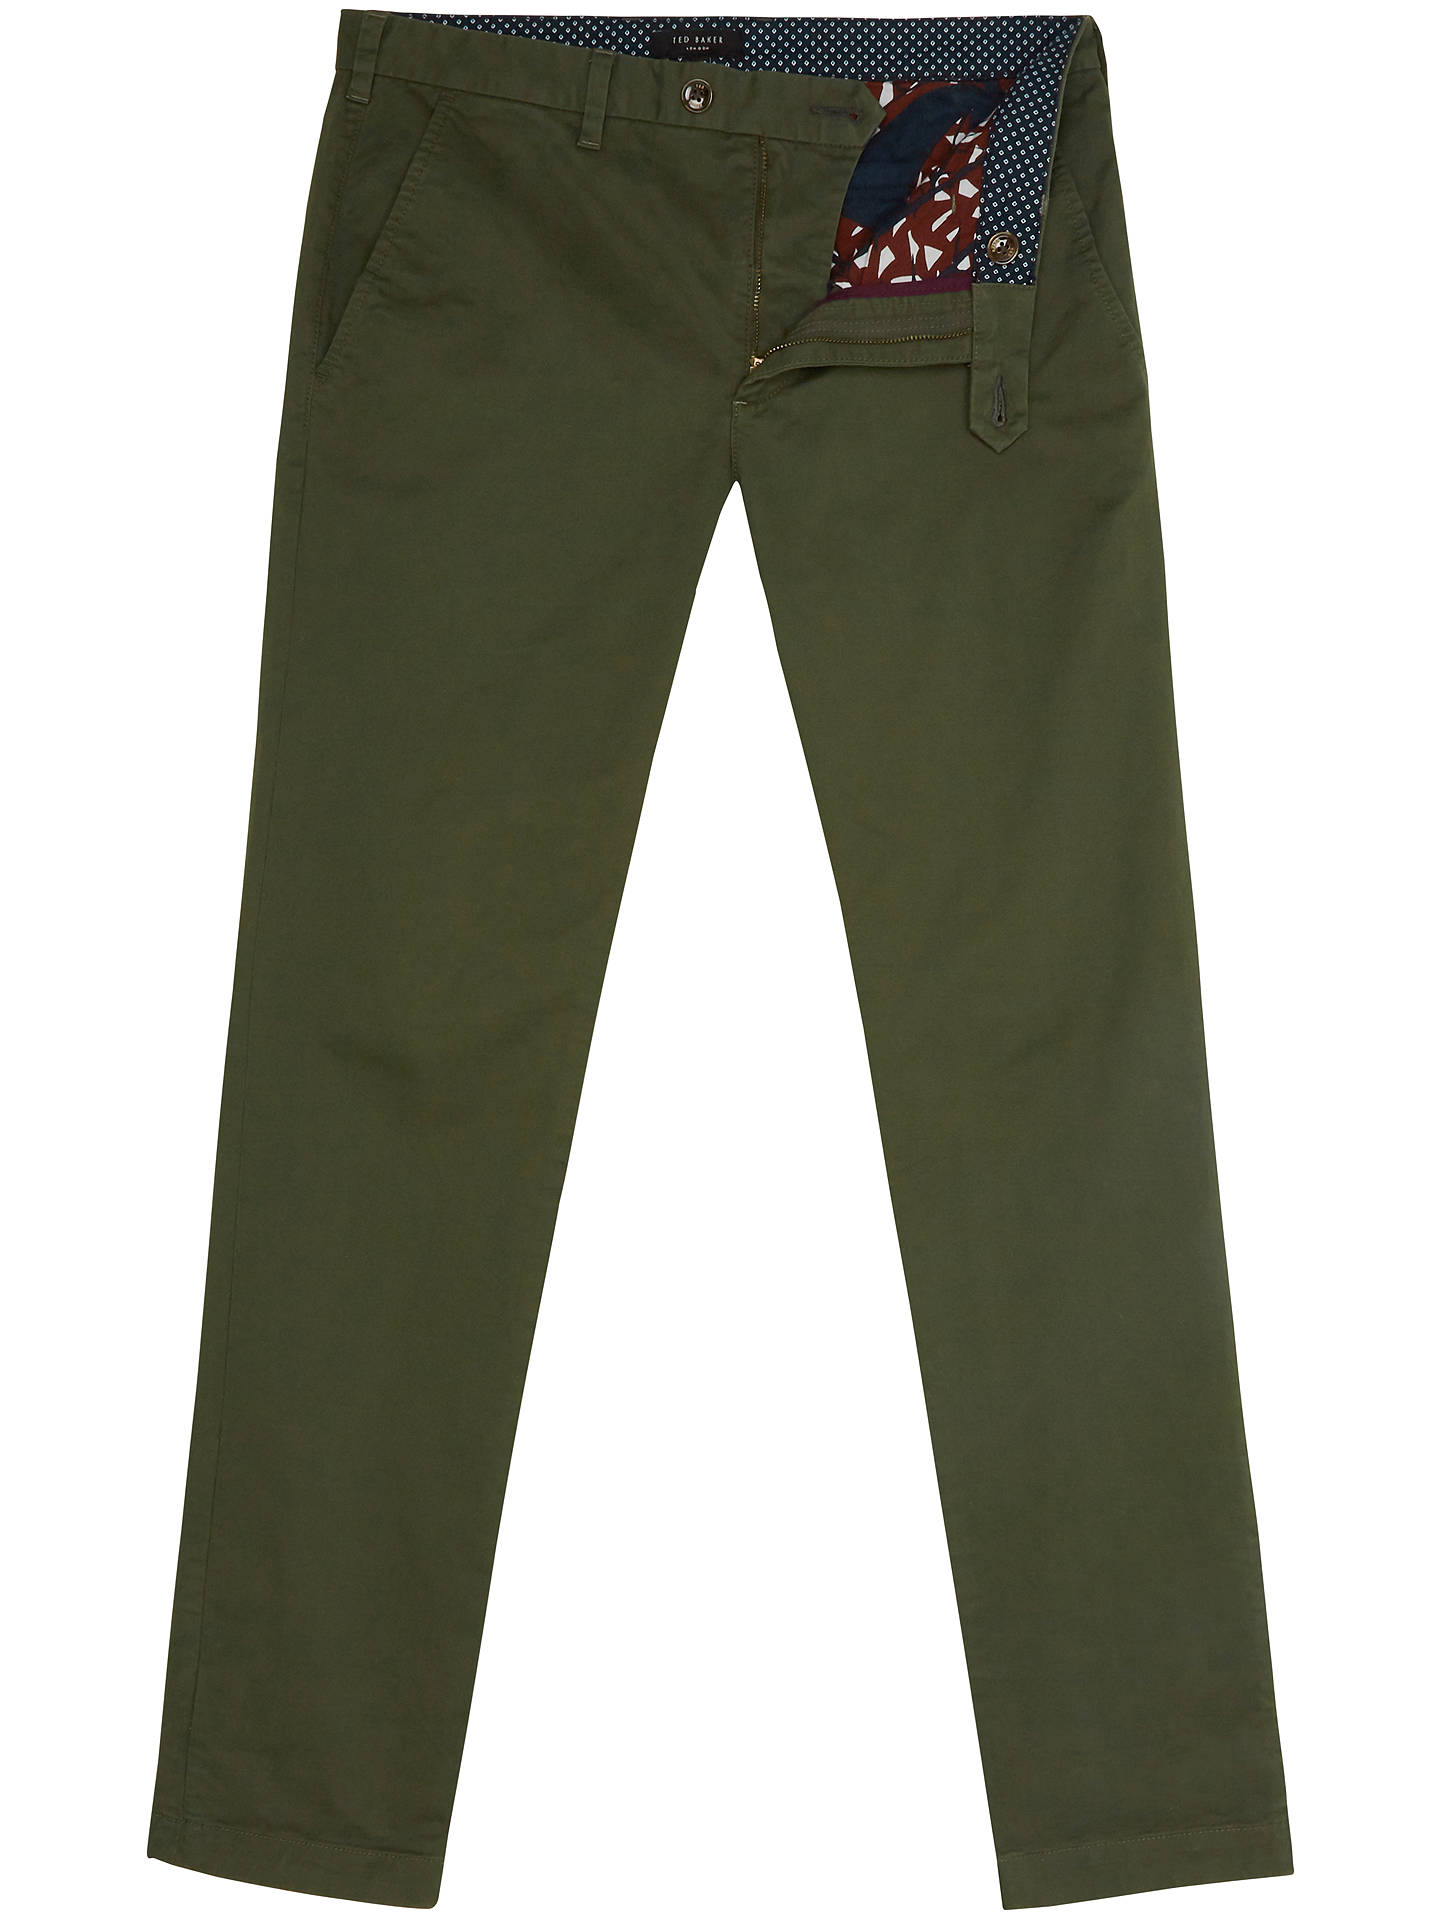 Buy Ted Baker Seleb Slim Fit Chinos, Green, 26S Online at johnlewis.com